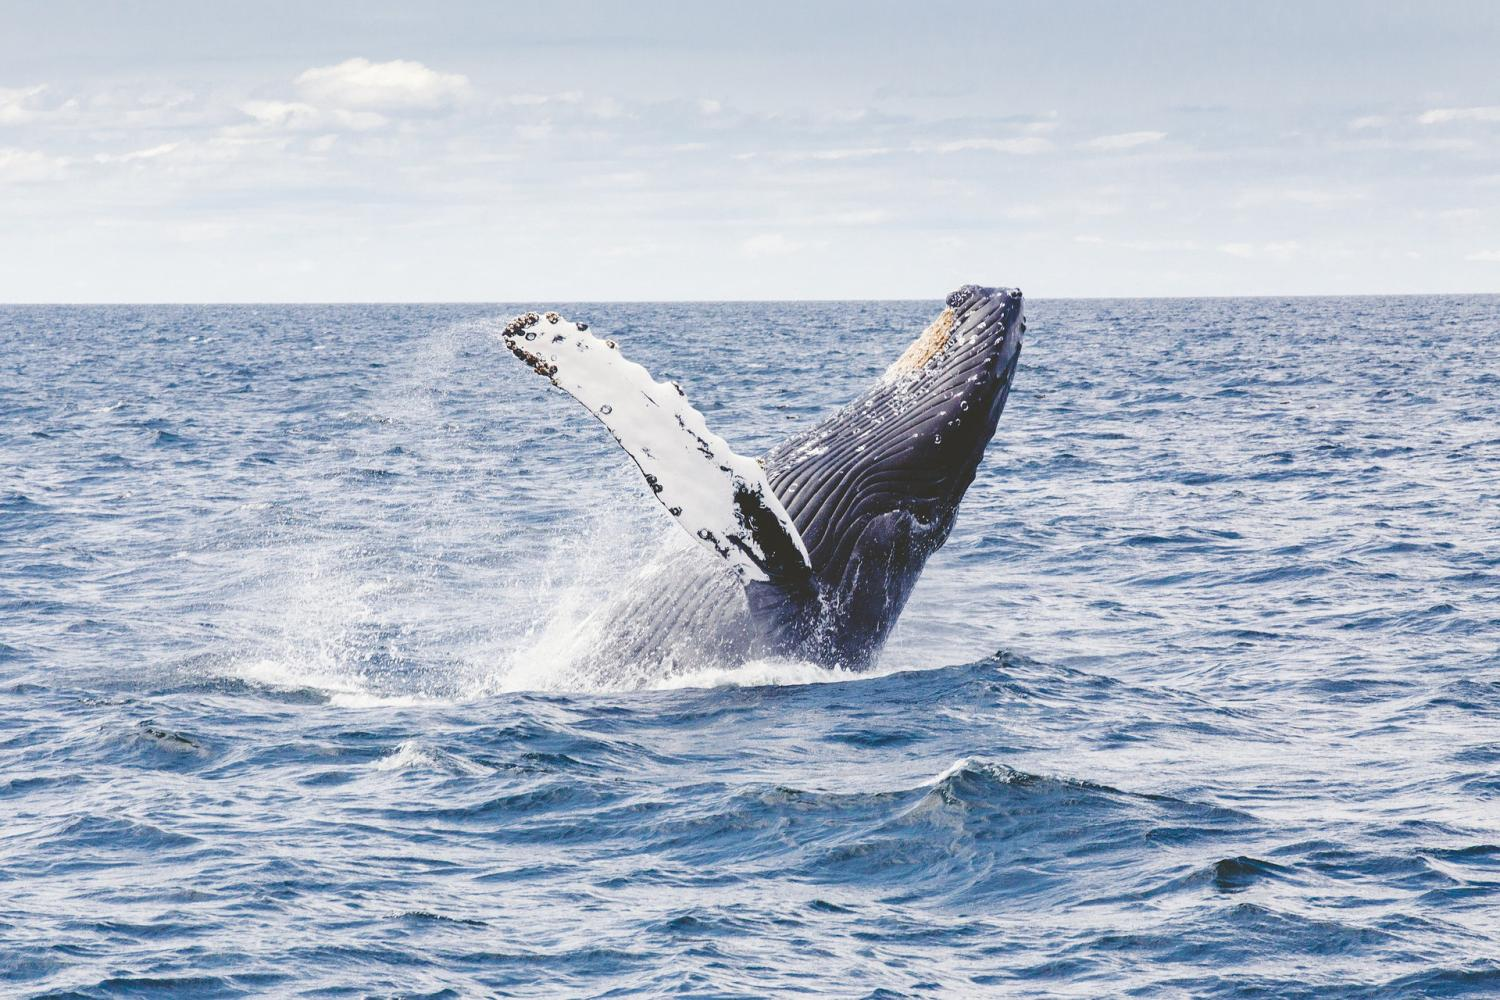 Iceland Whale Watching & Golden Circle Tour